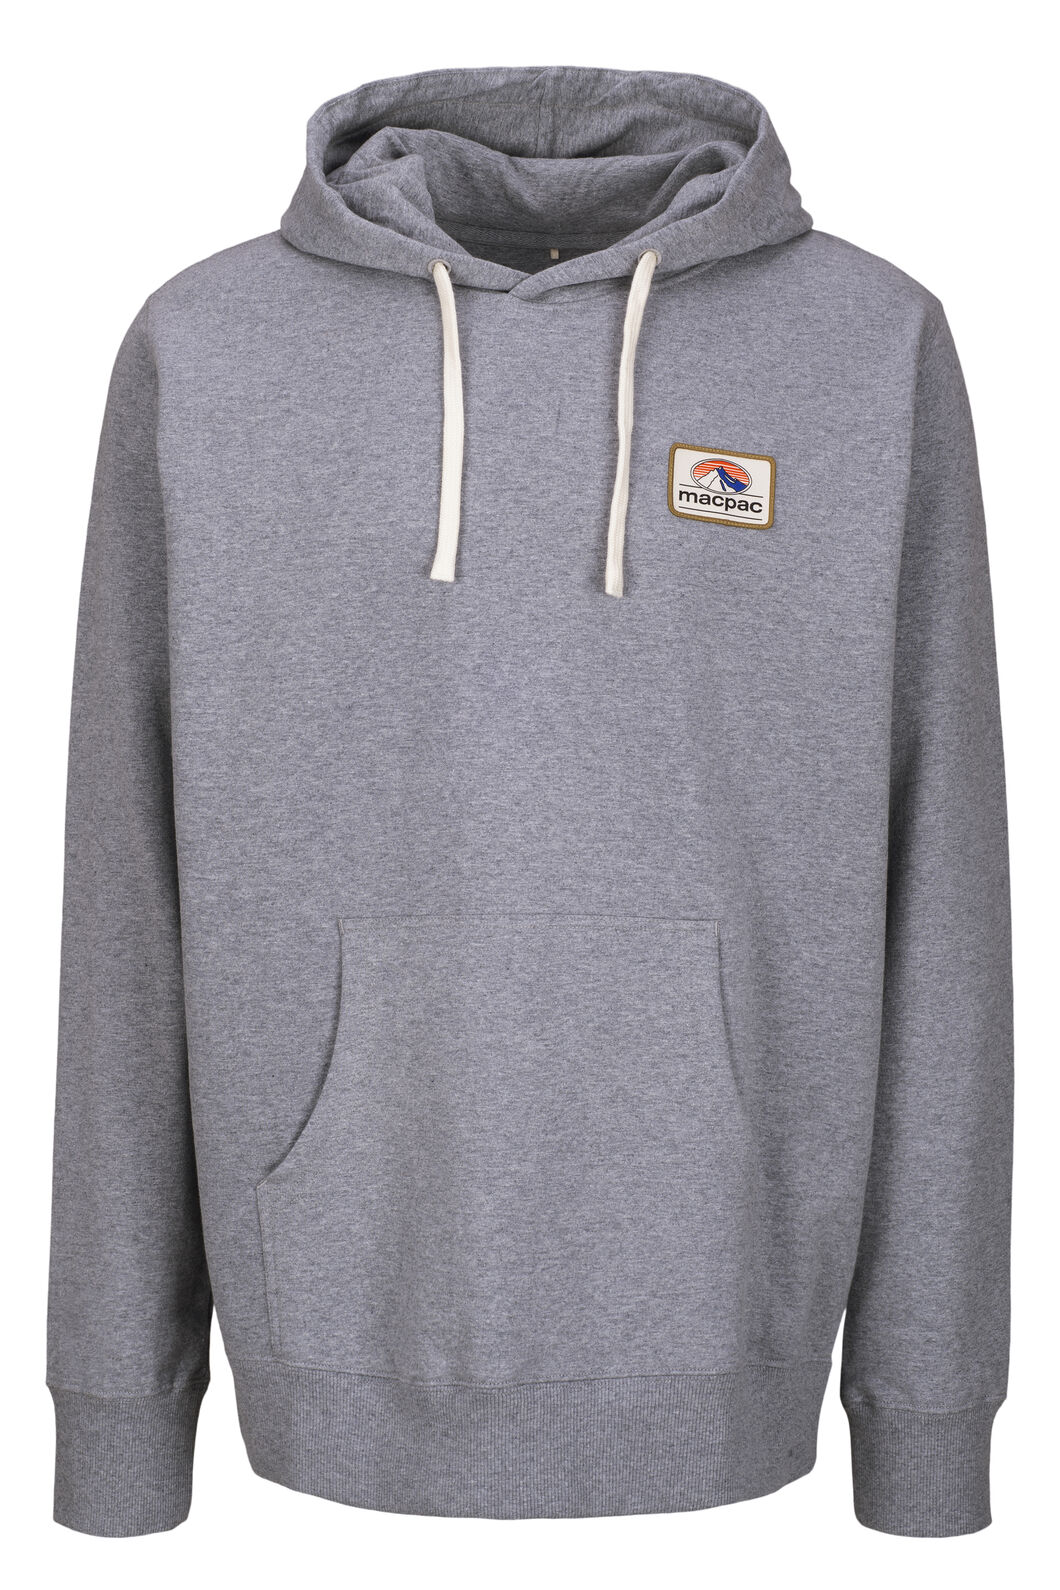 Macpac Organic Cotton Fairtrade Hooded Pullover — Men's, Grey Marle Patch, hi-res